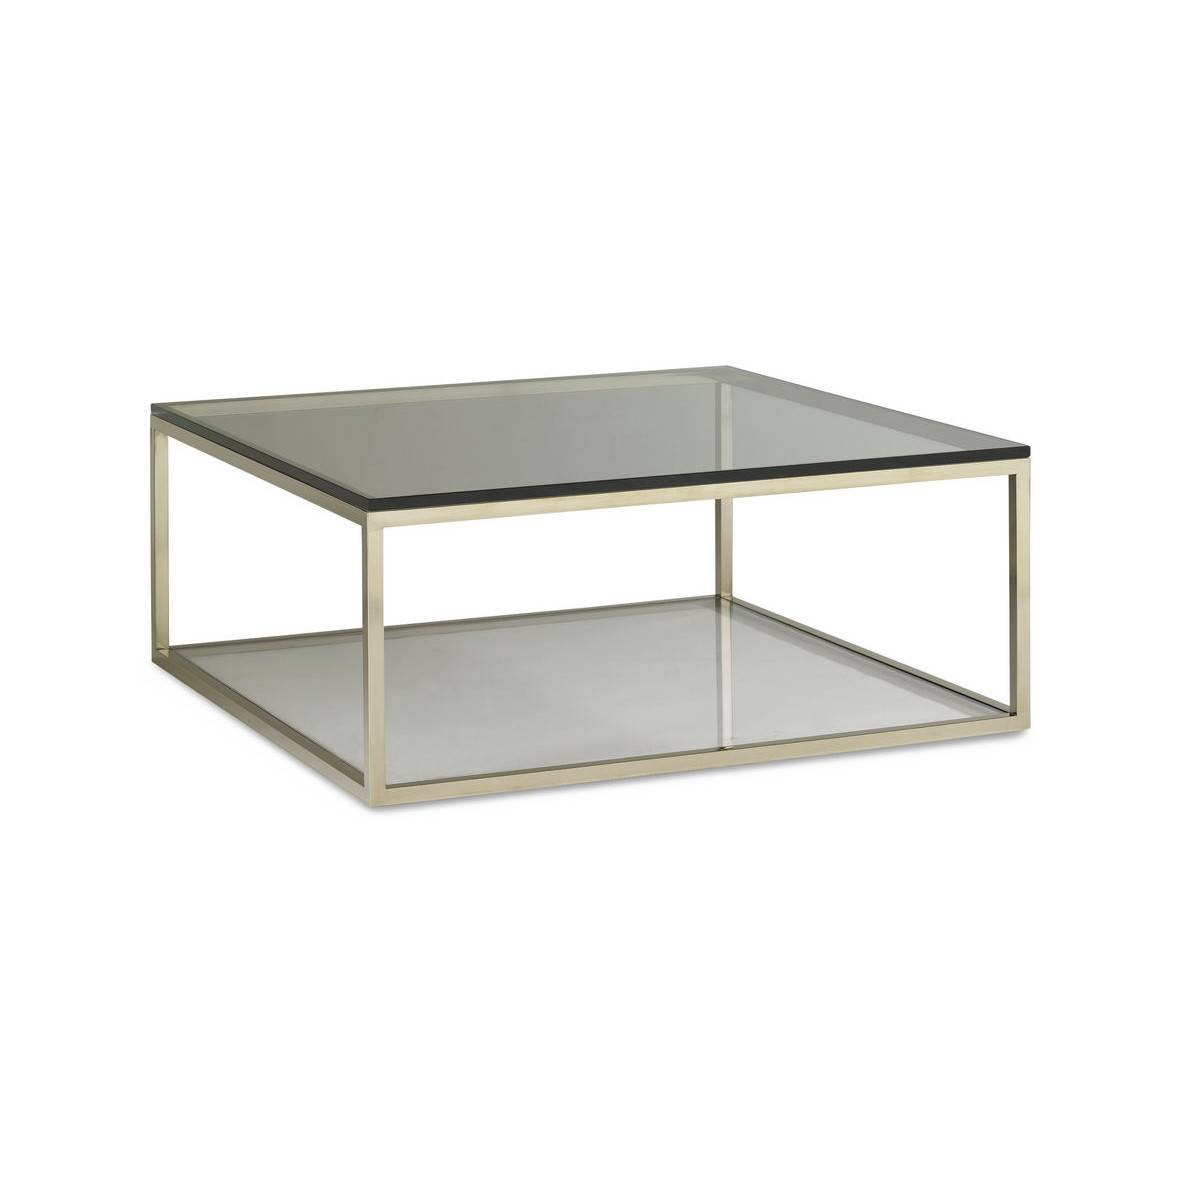 Glass Square Coffee Table - Jericho Mafjar Project throughout Glass Chrome Coffee Tables (Image 20 of 30)